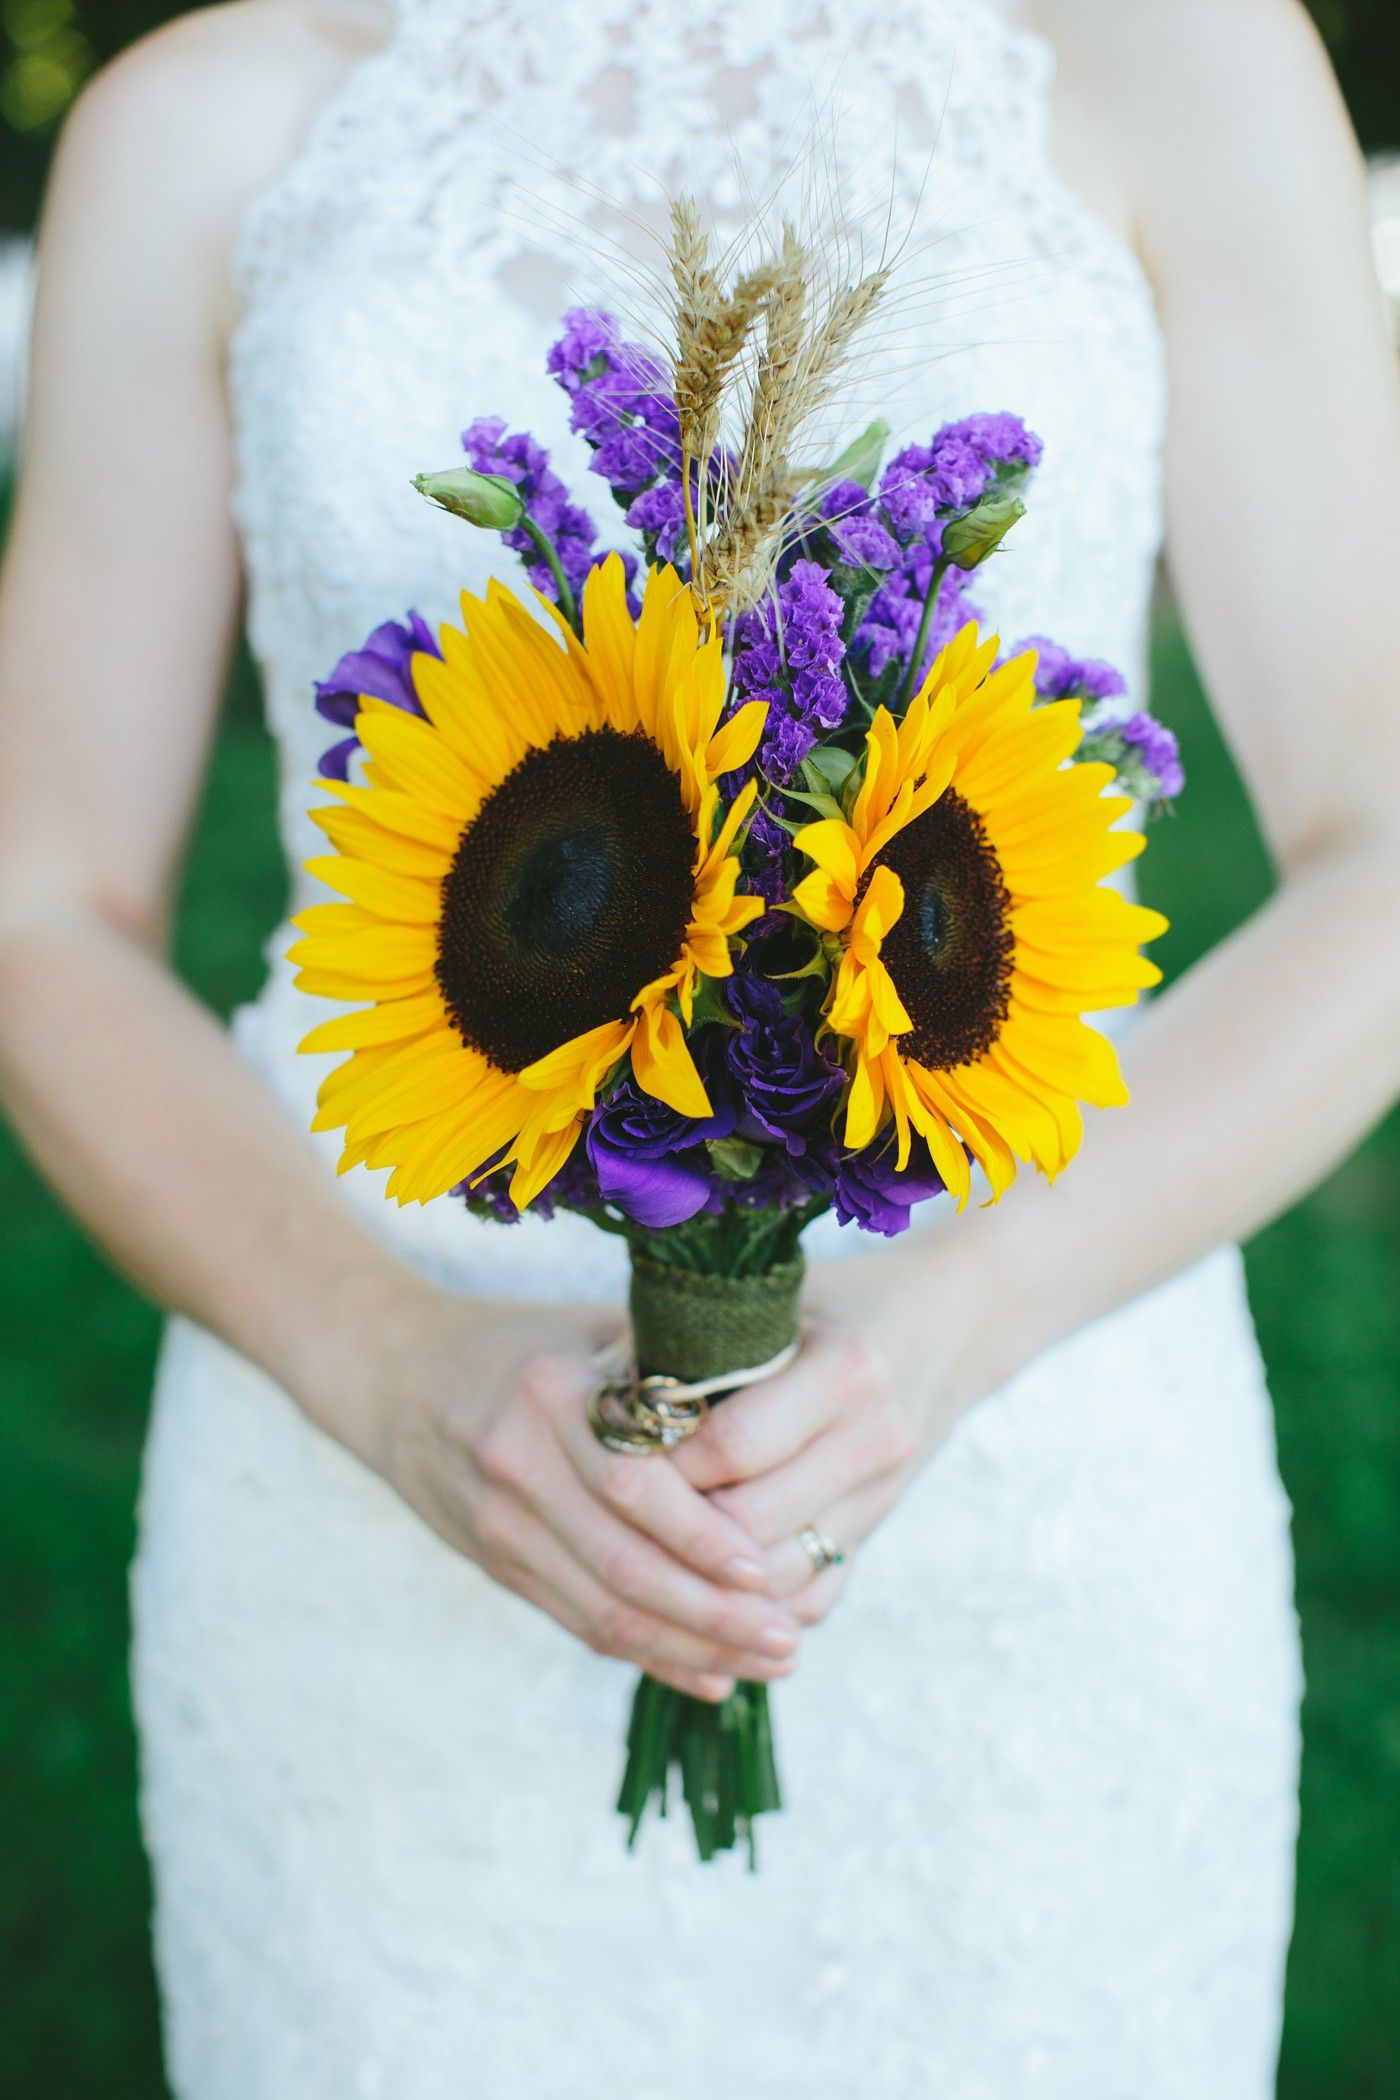 Wedding bouquets of sunflowers  Remembrance Wedding Bouquet made by the Bride to honor the deceased